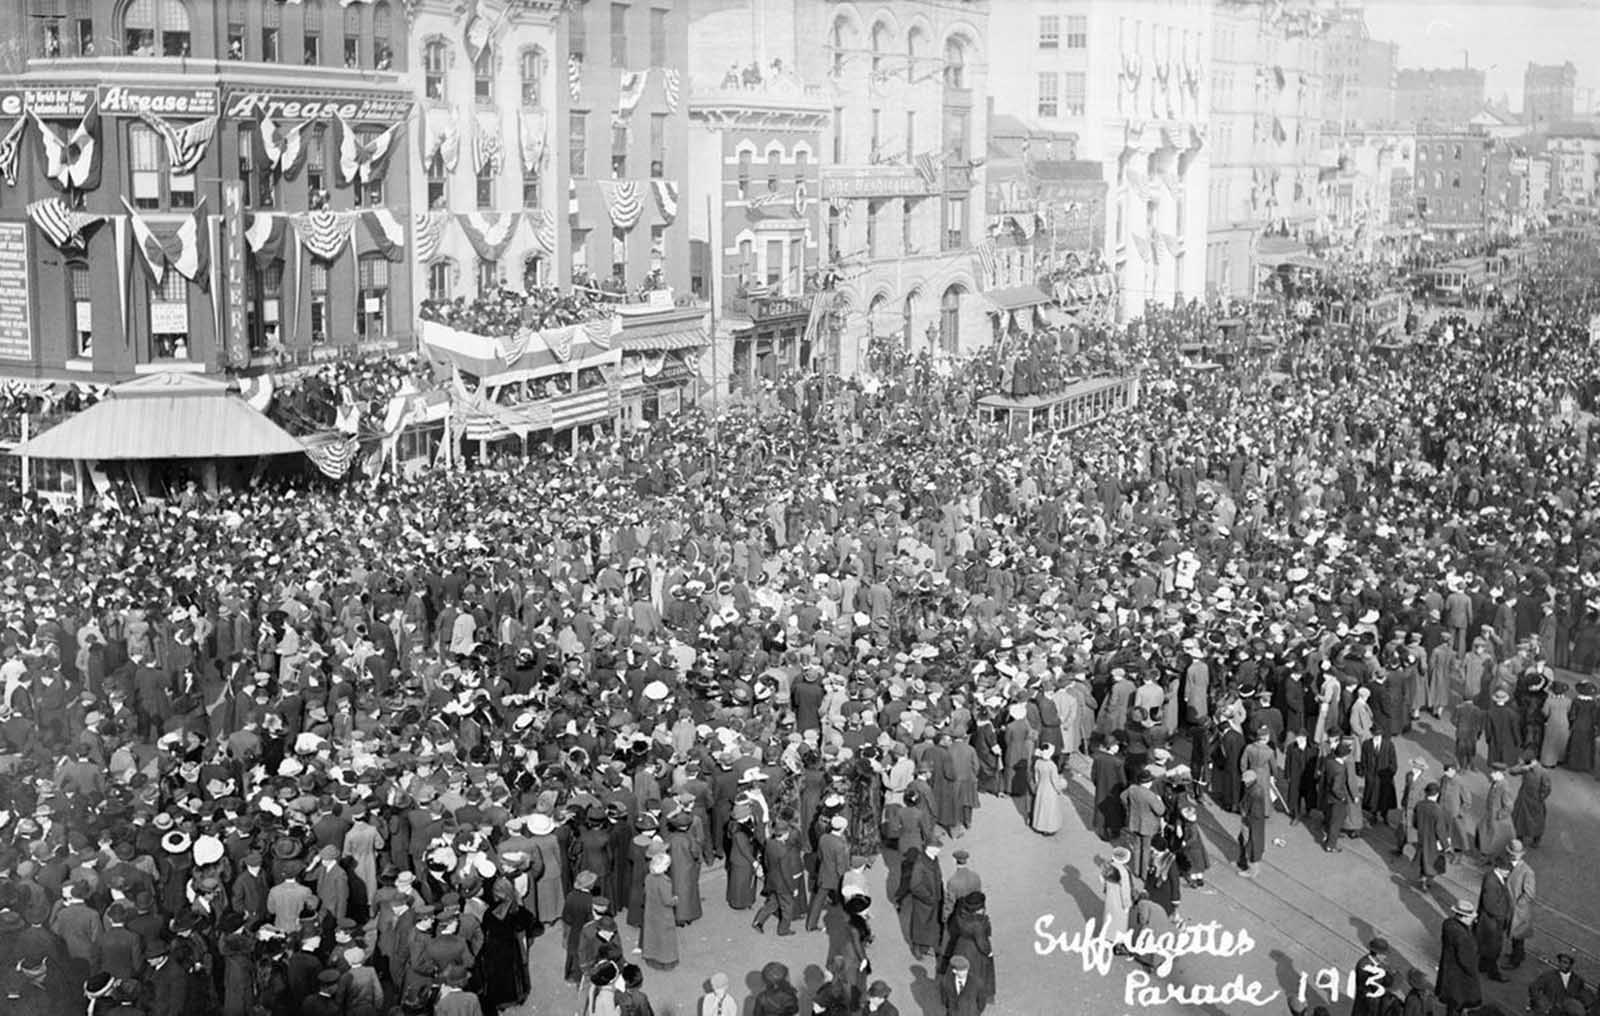 Crowds press in on the parade route in Washington, District of Columbia, on March 3, 1913. The stands and bunting were in place for the Inauguration of President Woodrow Wilson, scheduled for the following day.